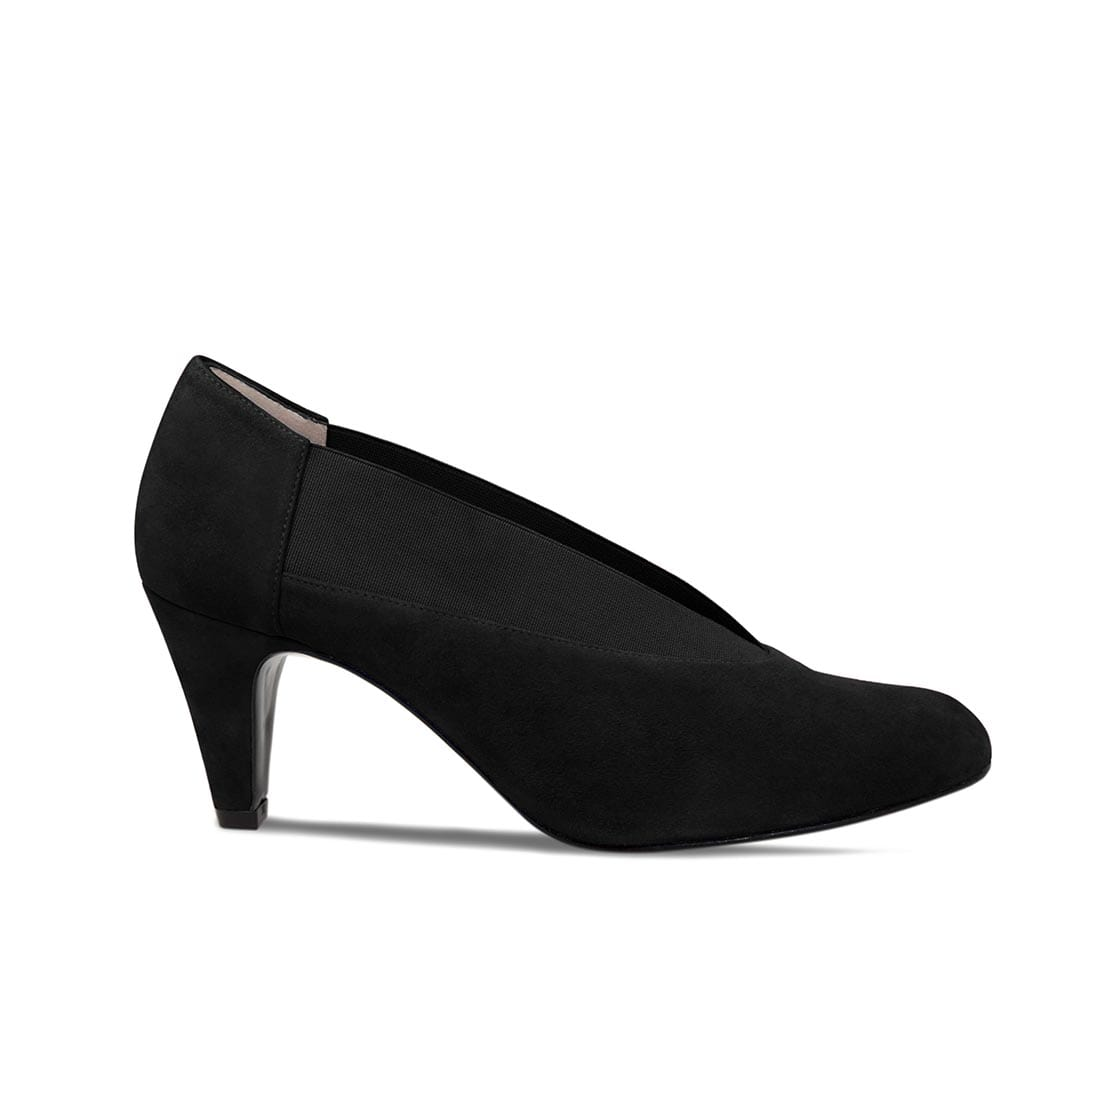 Black Suede Heels with Elasticated Top Line